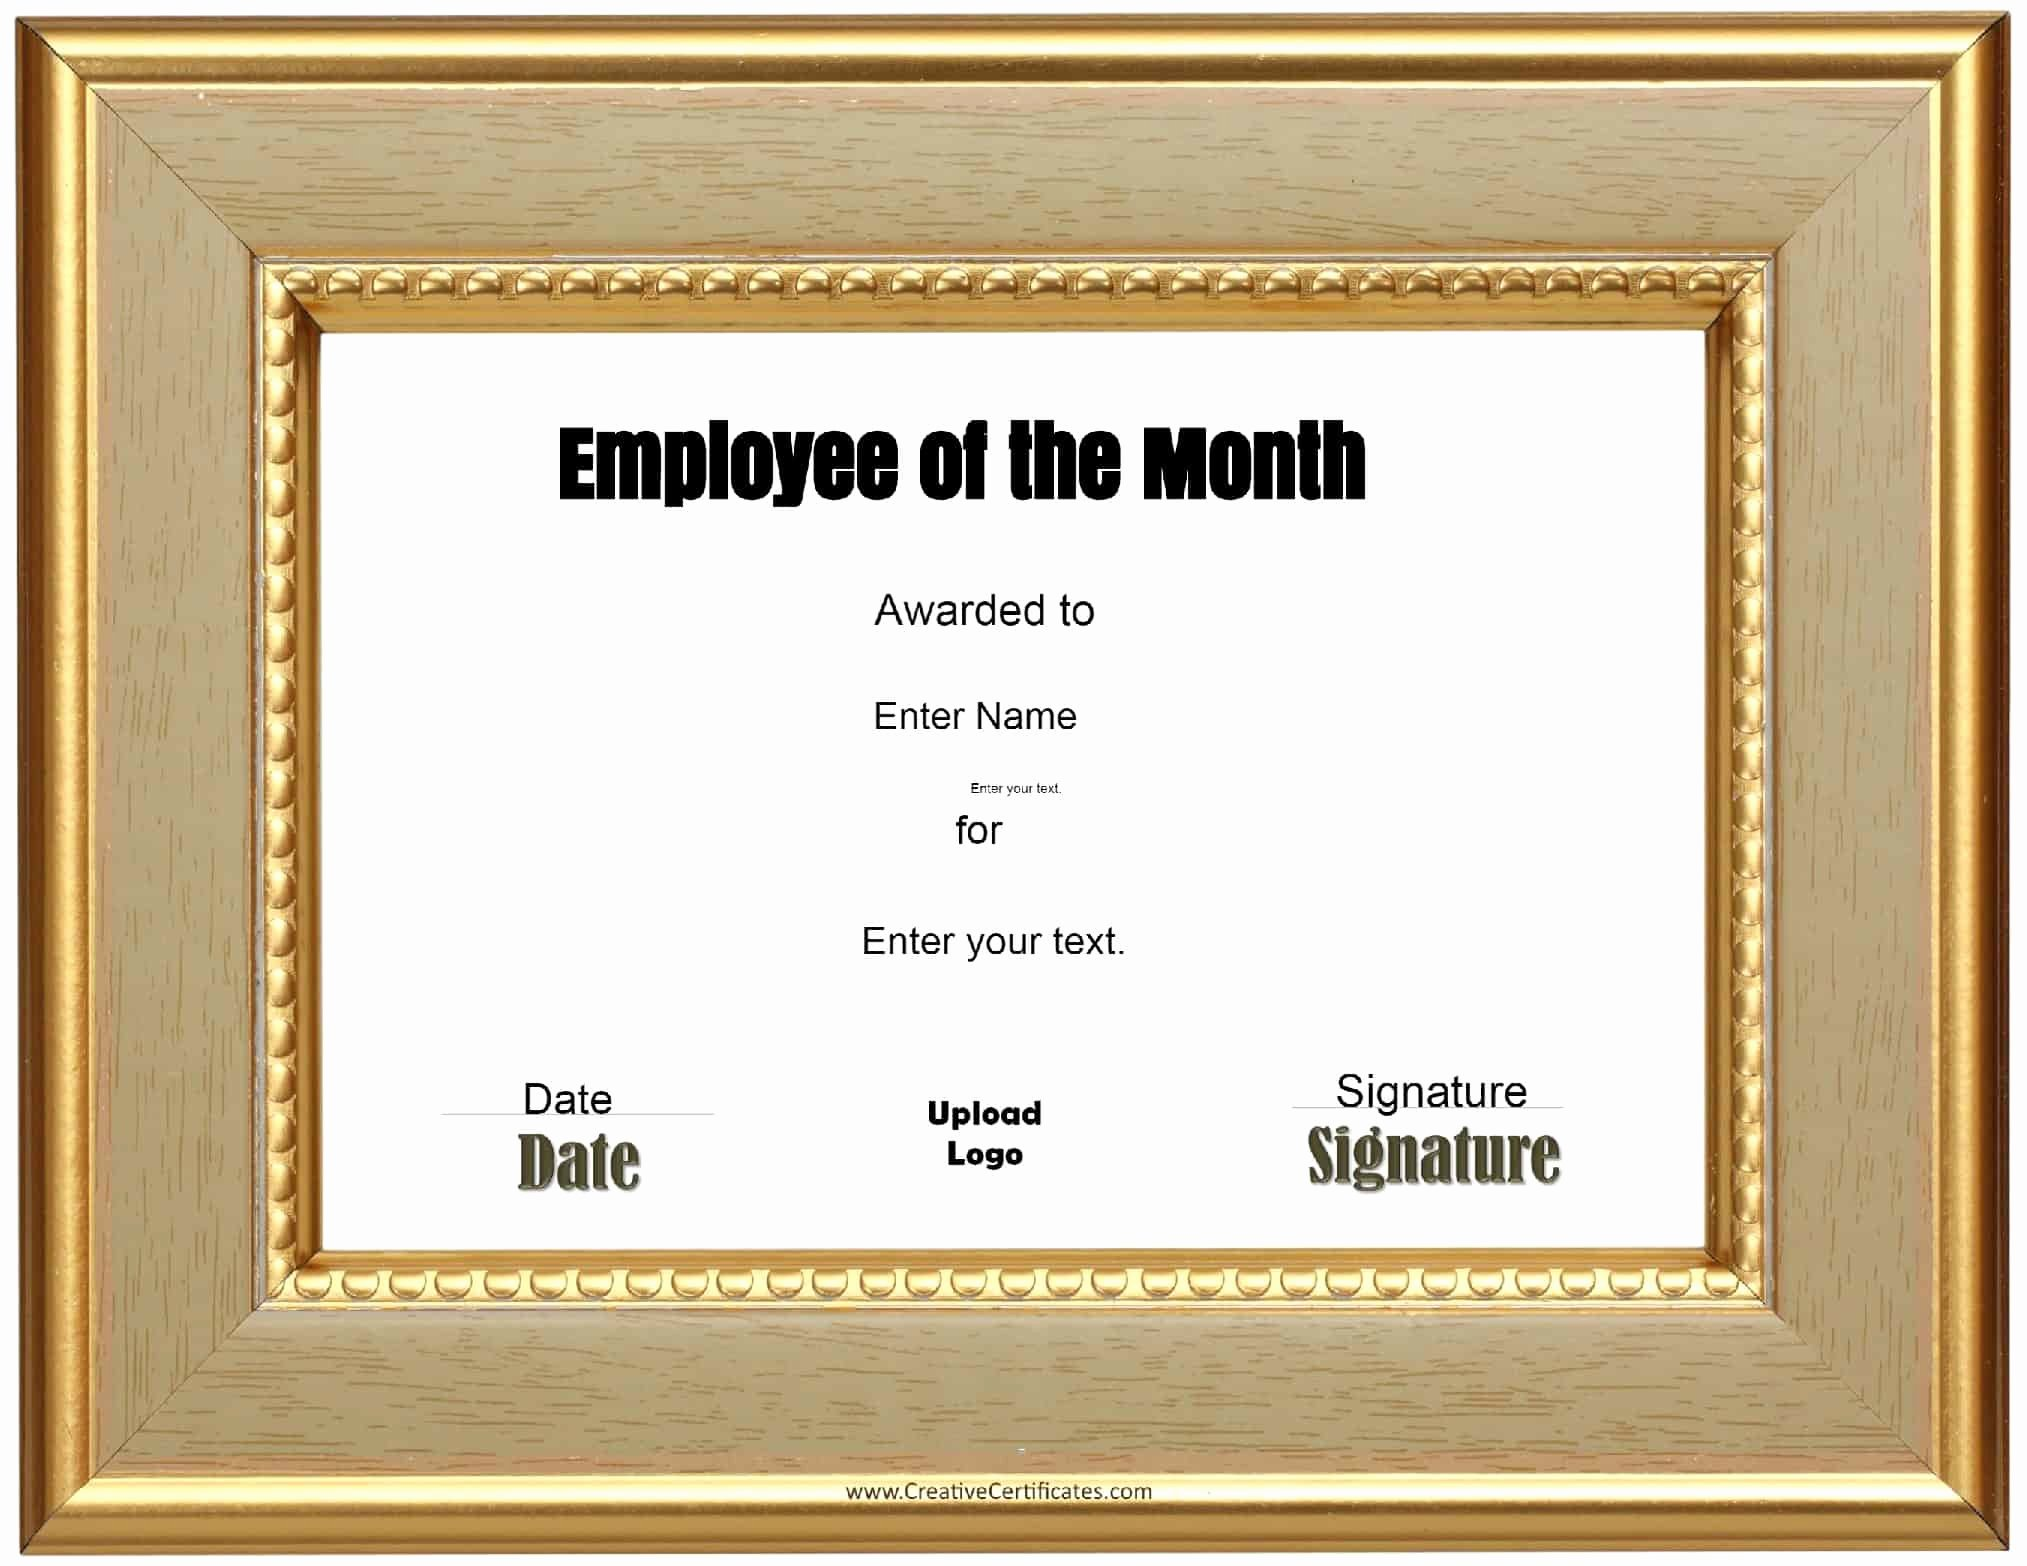 Employee Of the Month Plaque Template Fresh Free Custom Employee Of the Month Certificate